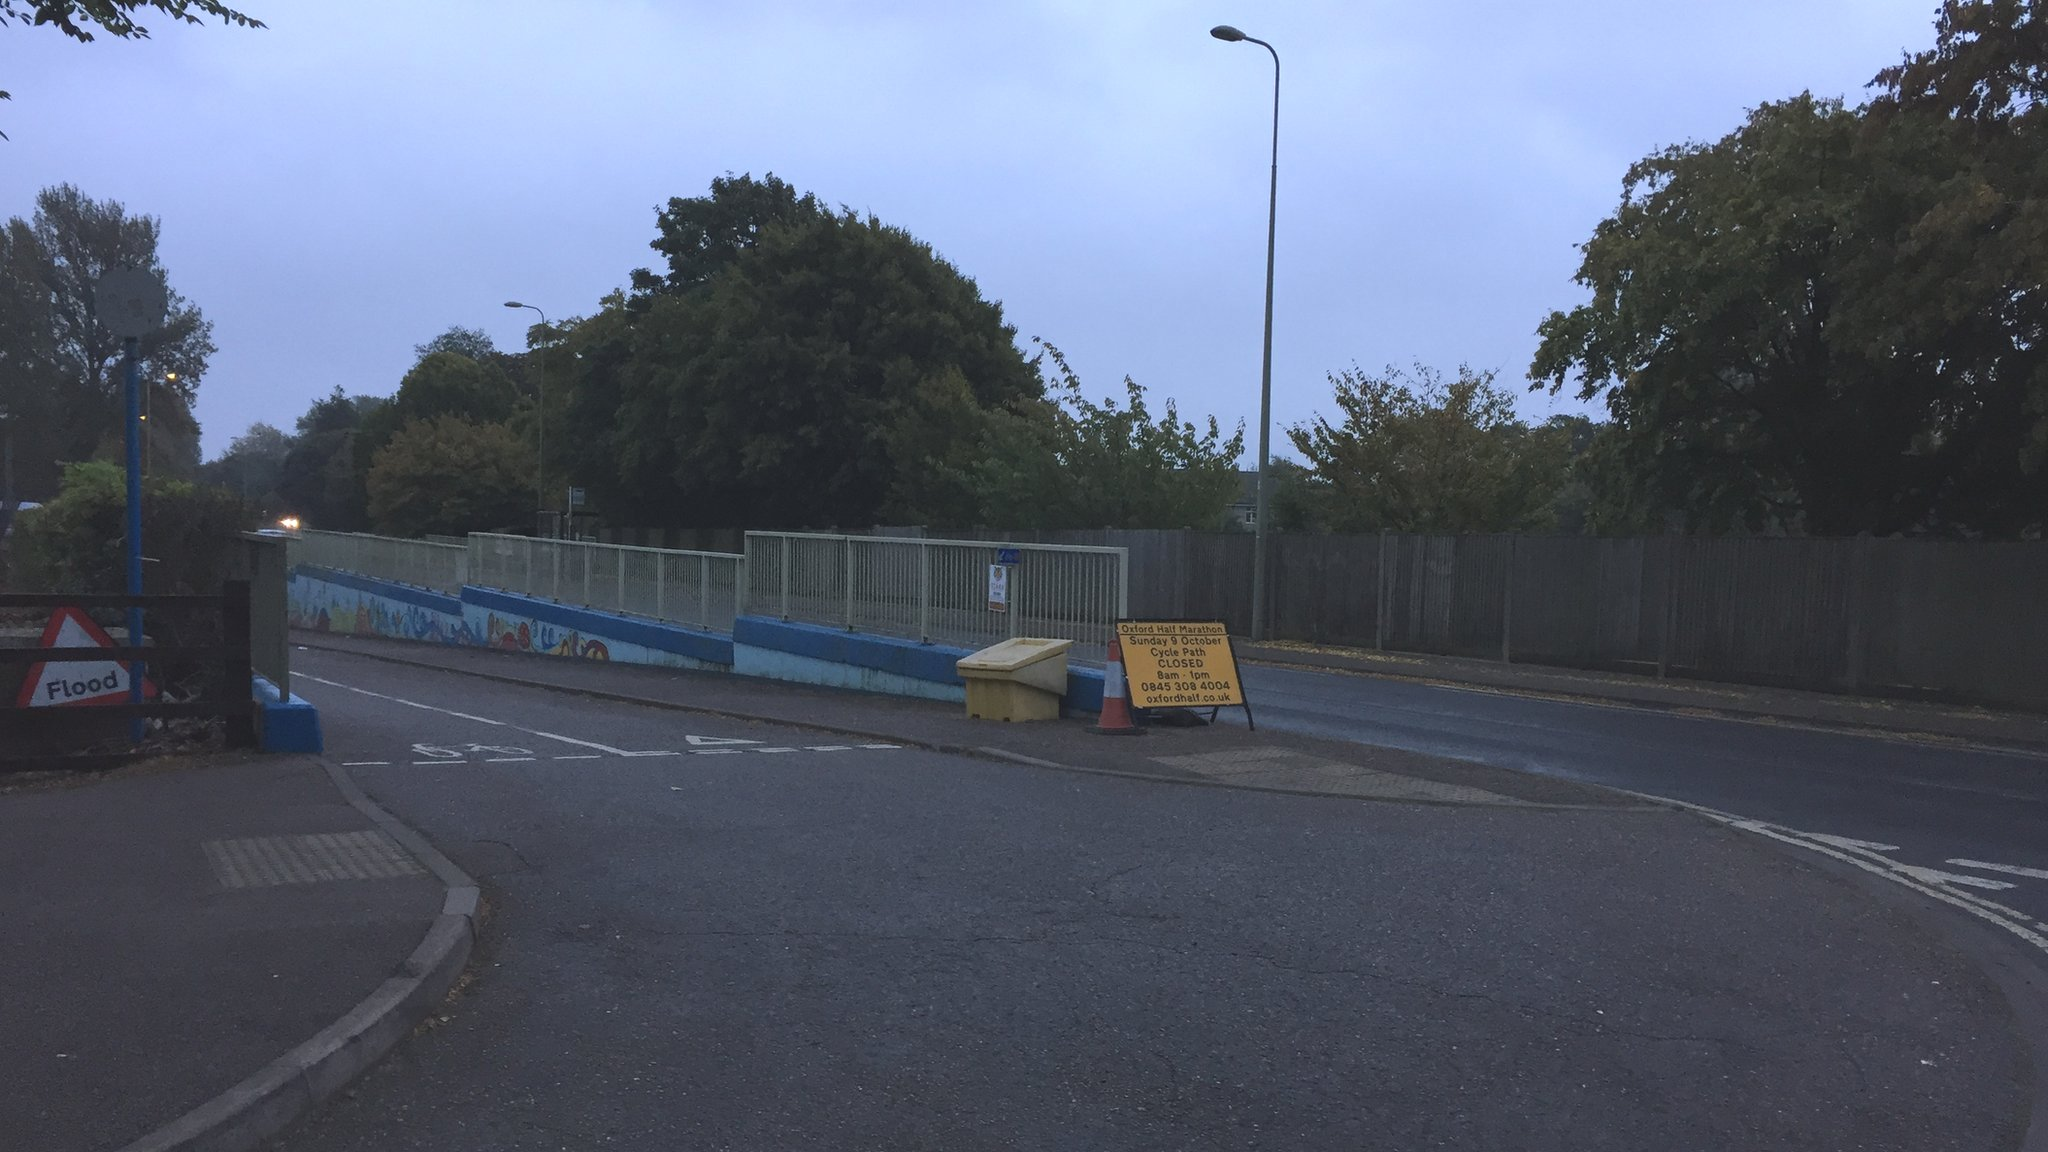 Girl abducted walking to school in Oxford